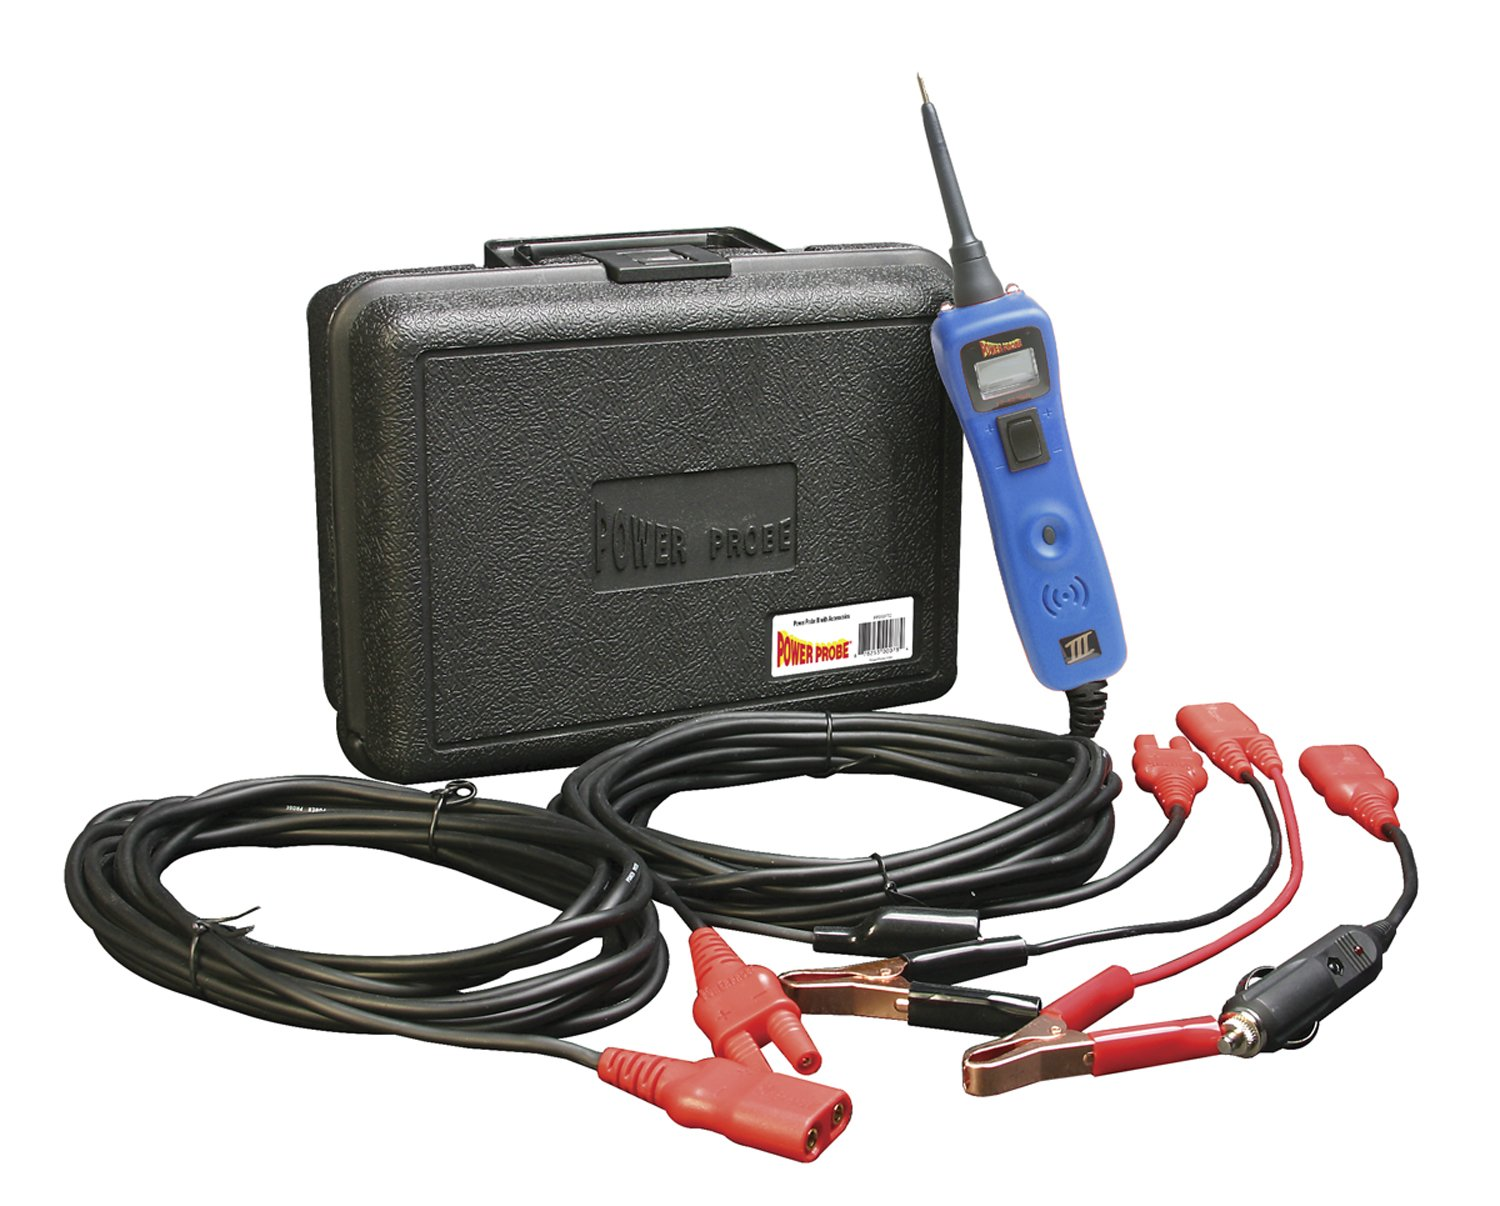 POWER PROBE III W/ Case & Acc - Blue (PP319FTCBLU) [Car Automotive Diagnostic Test Tool Power Up Electrical Components Digital Volt Meter ACDC Current Resistance Circuit Tester LCD Screen Flashlight Short Circuit Indicator Audible Tone]